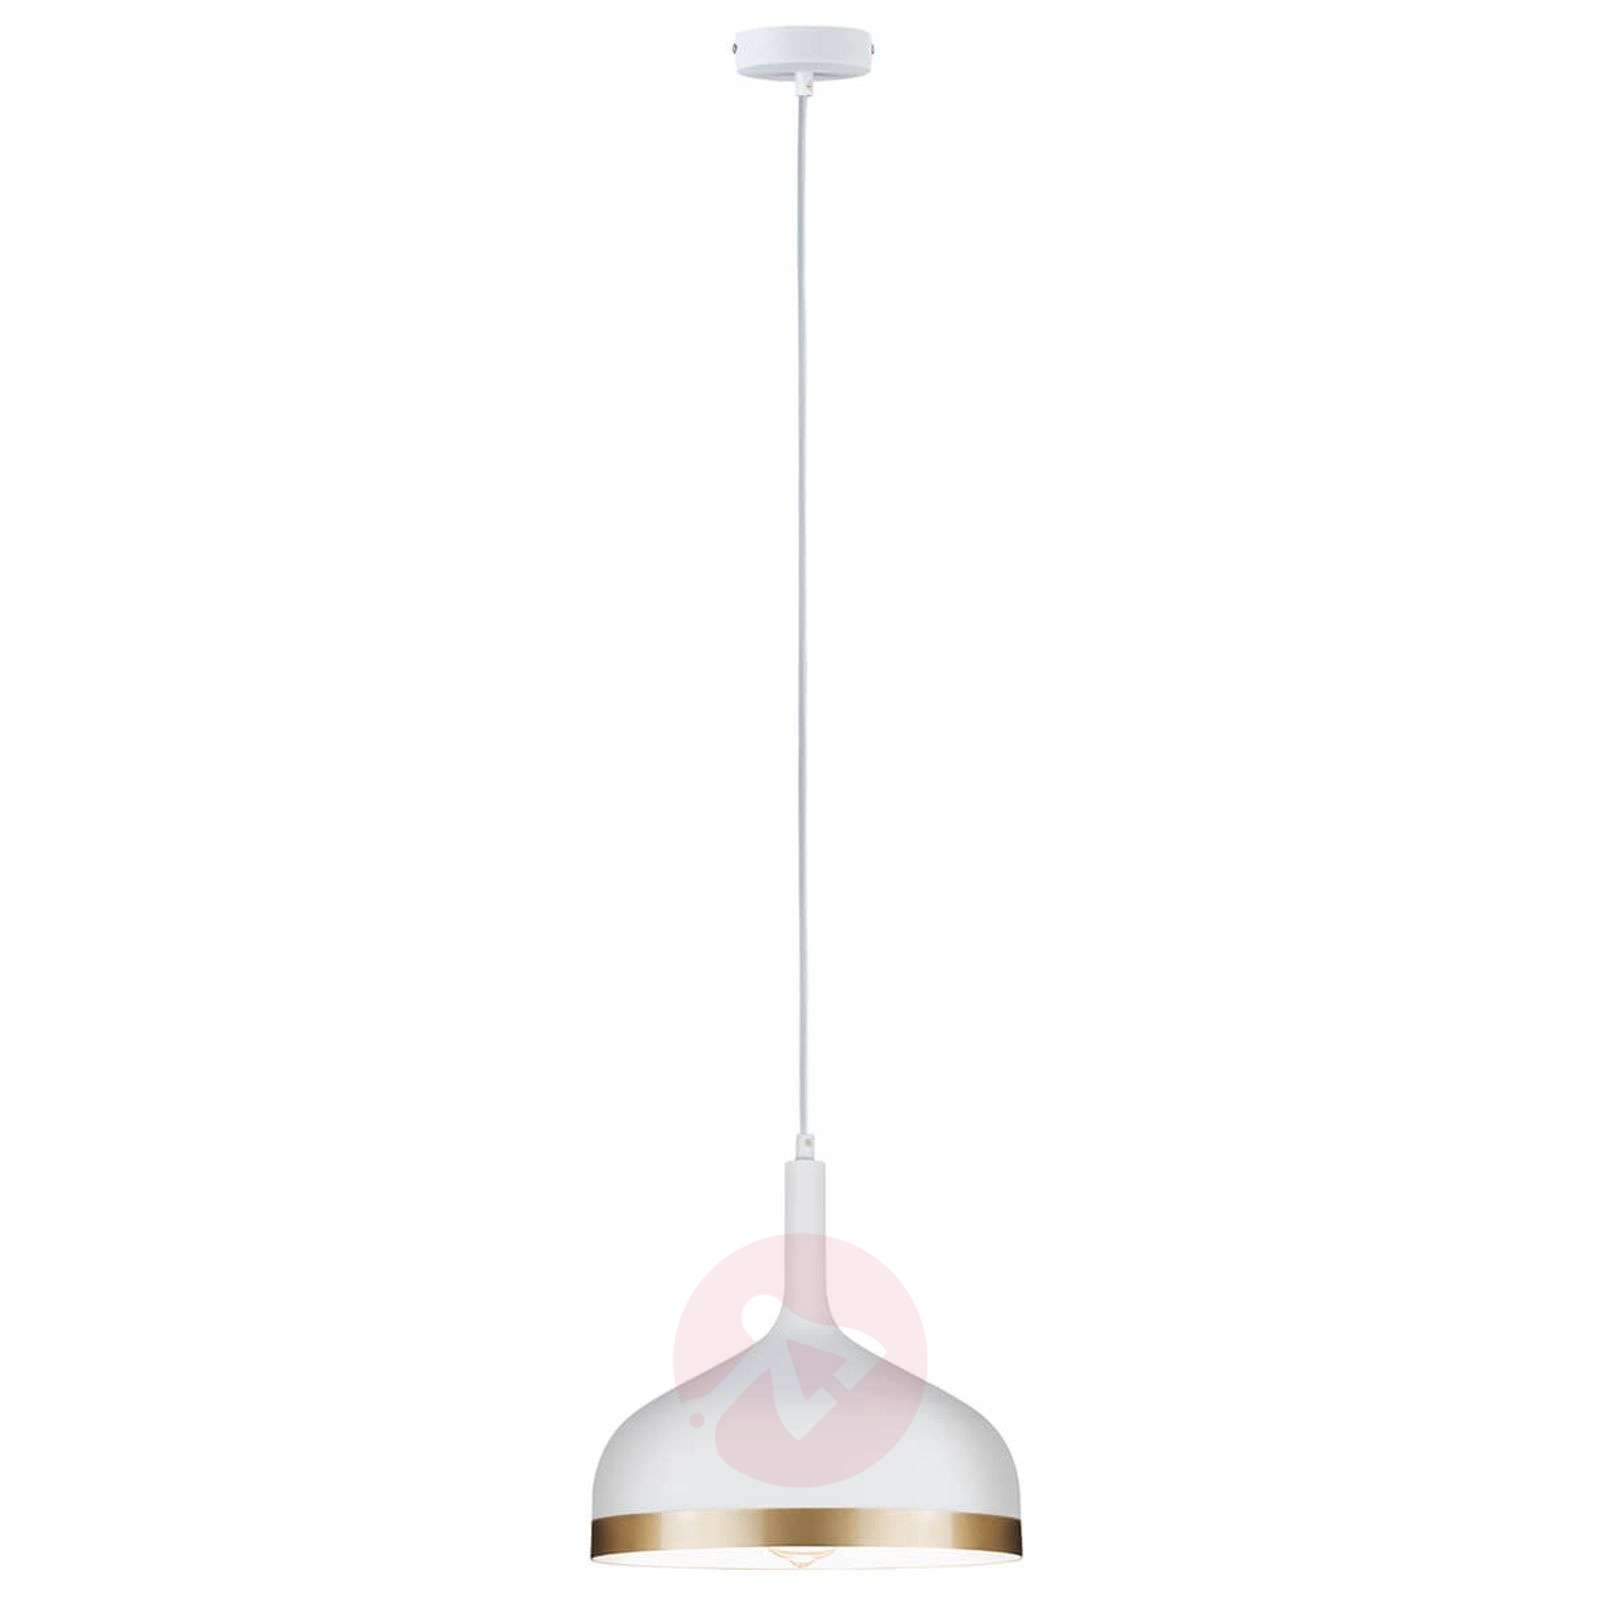 Stylish pendant light Embla-7601036-01